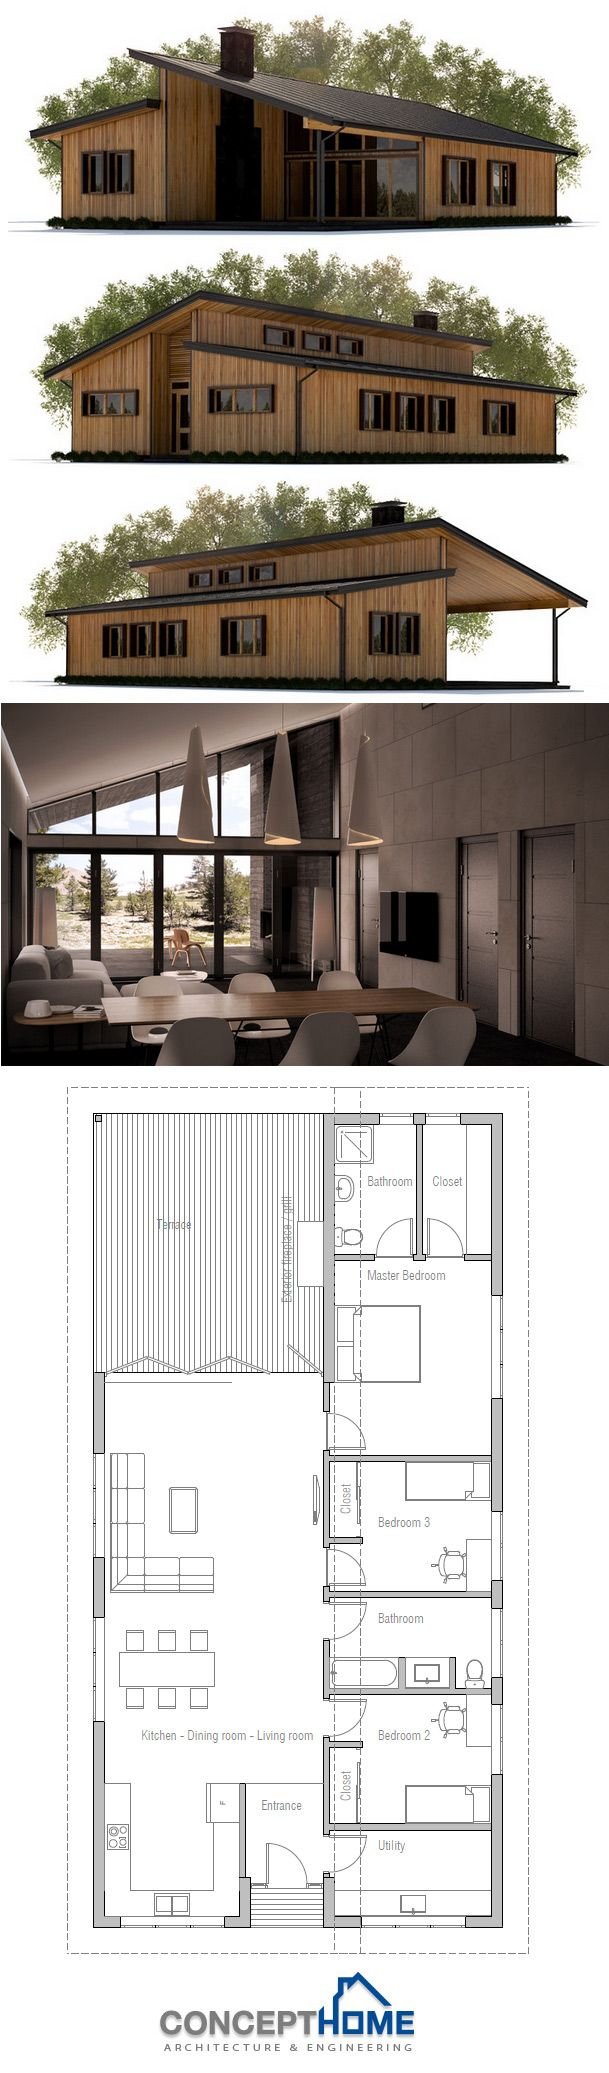 Narrow House Plan. I like that the bedrooms are right off the open living area. I feel like that helps the flow of the open space.